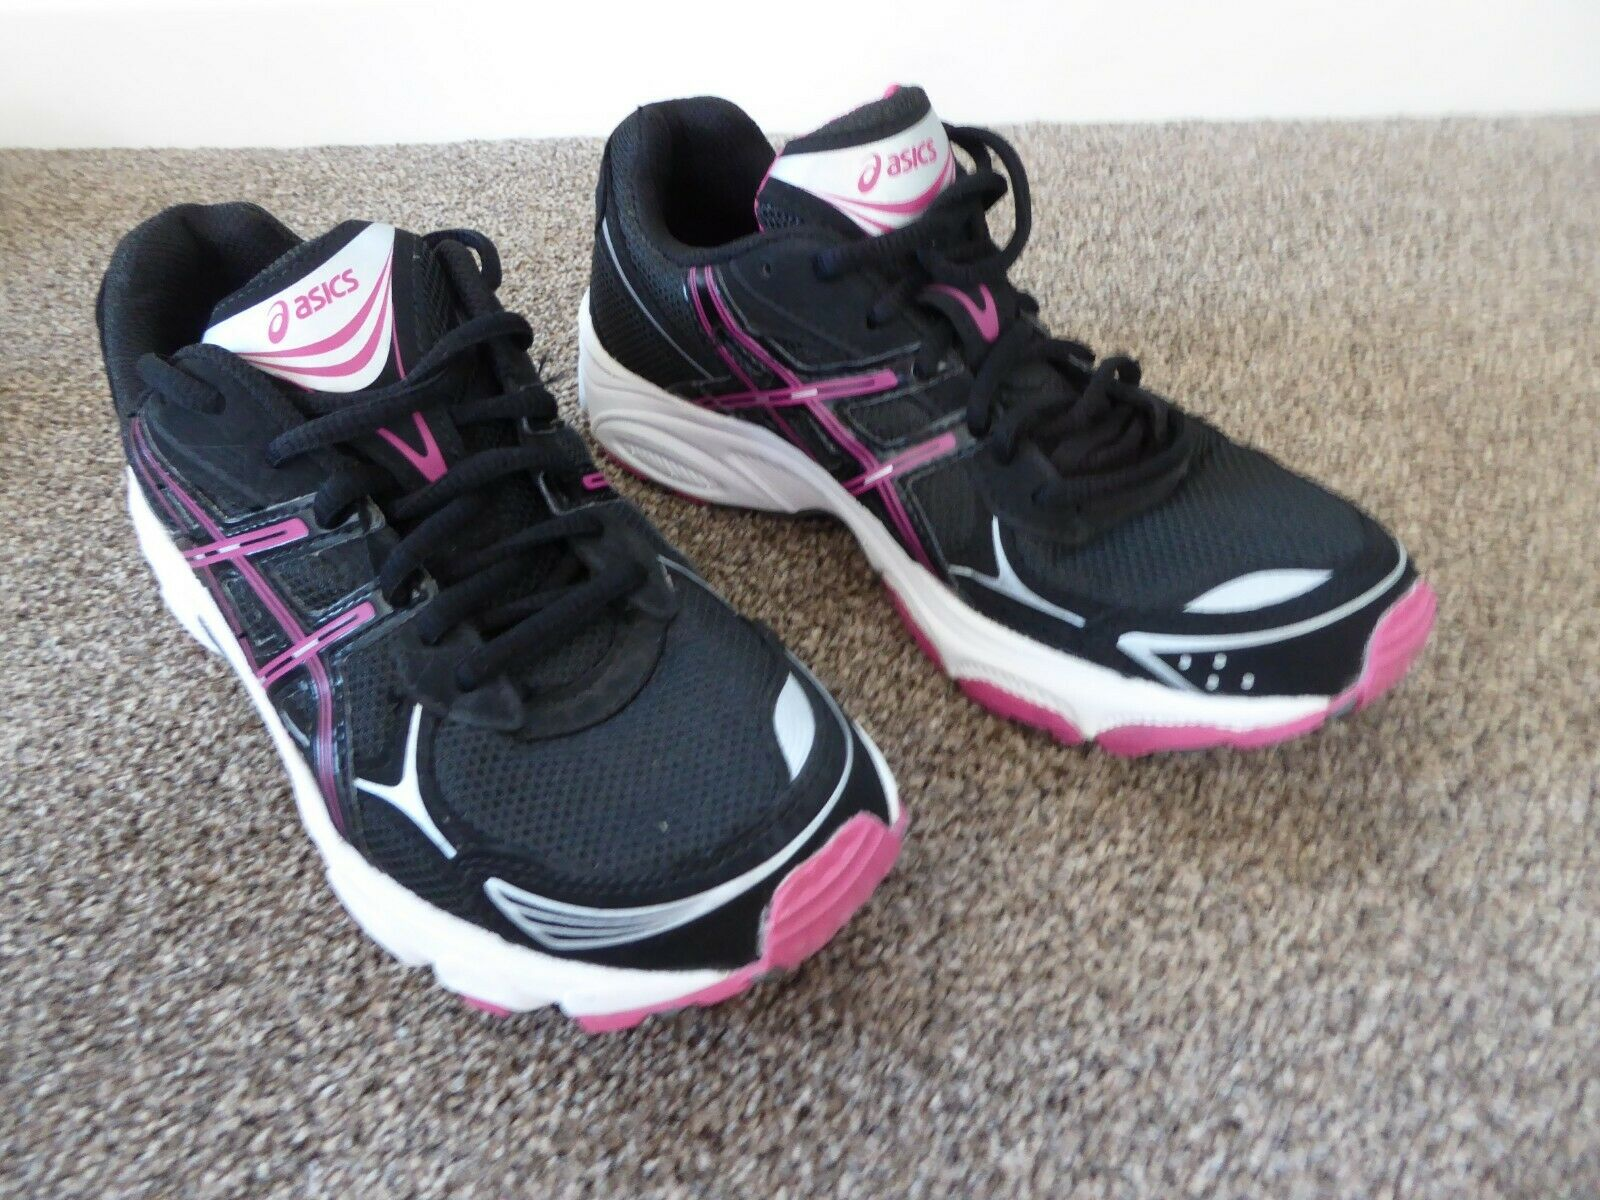 Womens Asics Gel Galaxy 5 Running  shoes UK6 Excellent Condition  buy 100% authentic quality